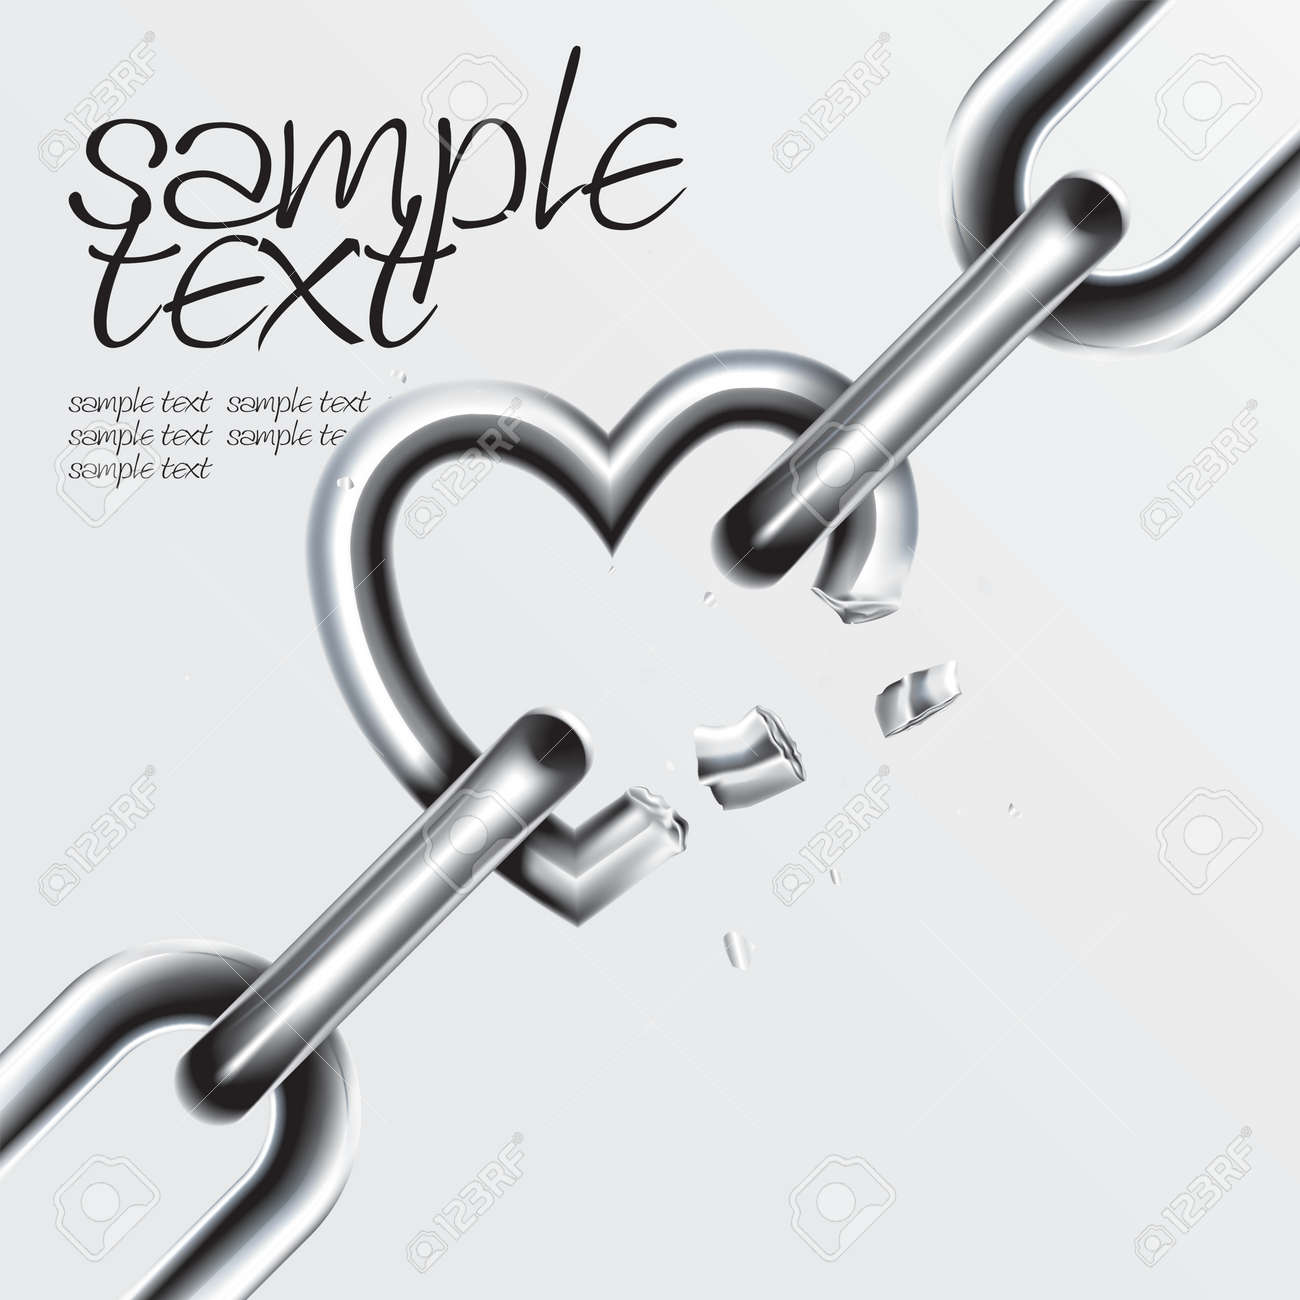 Broken Chain Set Stock Vector - 8544465